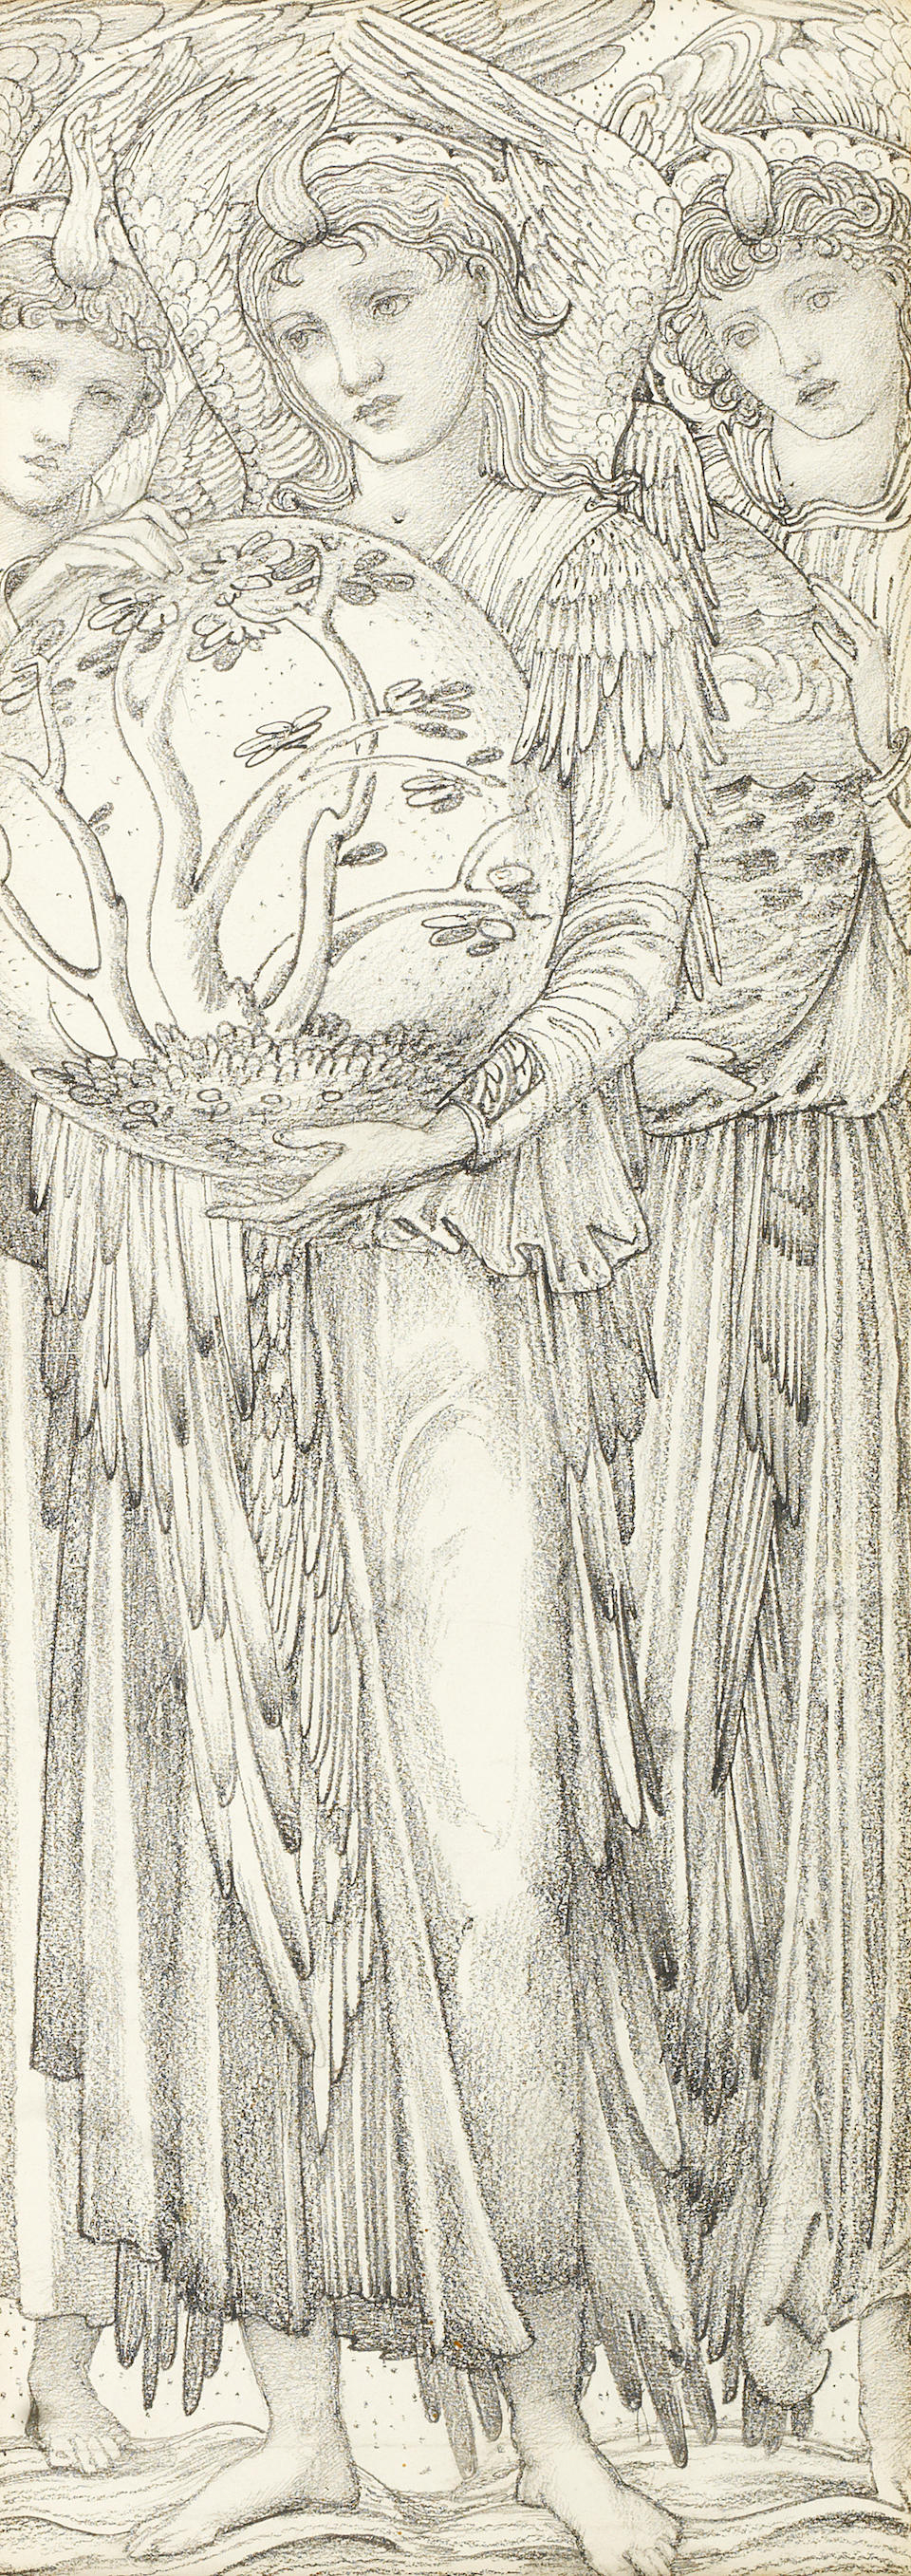 Sir Edward Coley Burne-Jones, Bt. ARA, RWS (British, 1833-1898) The Days of Creation